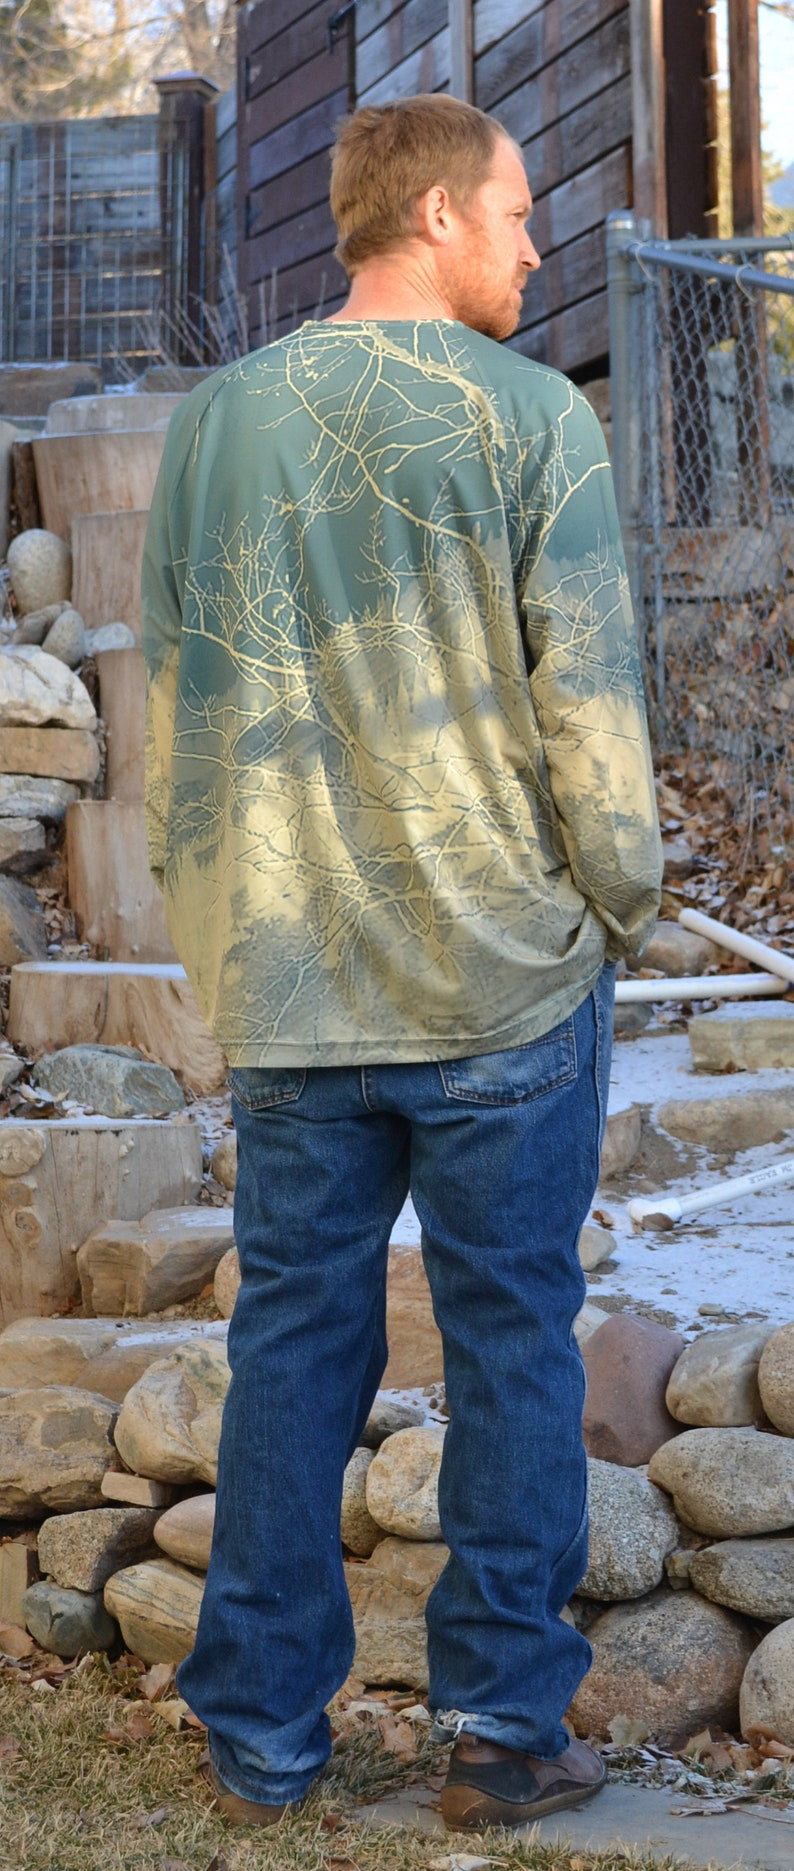 Mountain Graphic Men/'s Graphic Base Layer UV Protective Base Layer Eco Friendly Clothes Baldy Green and Gold, Recycled Polyester